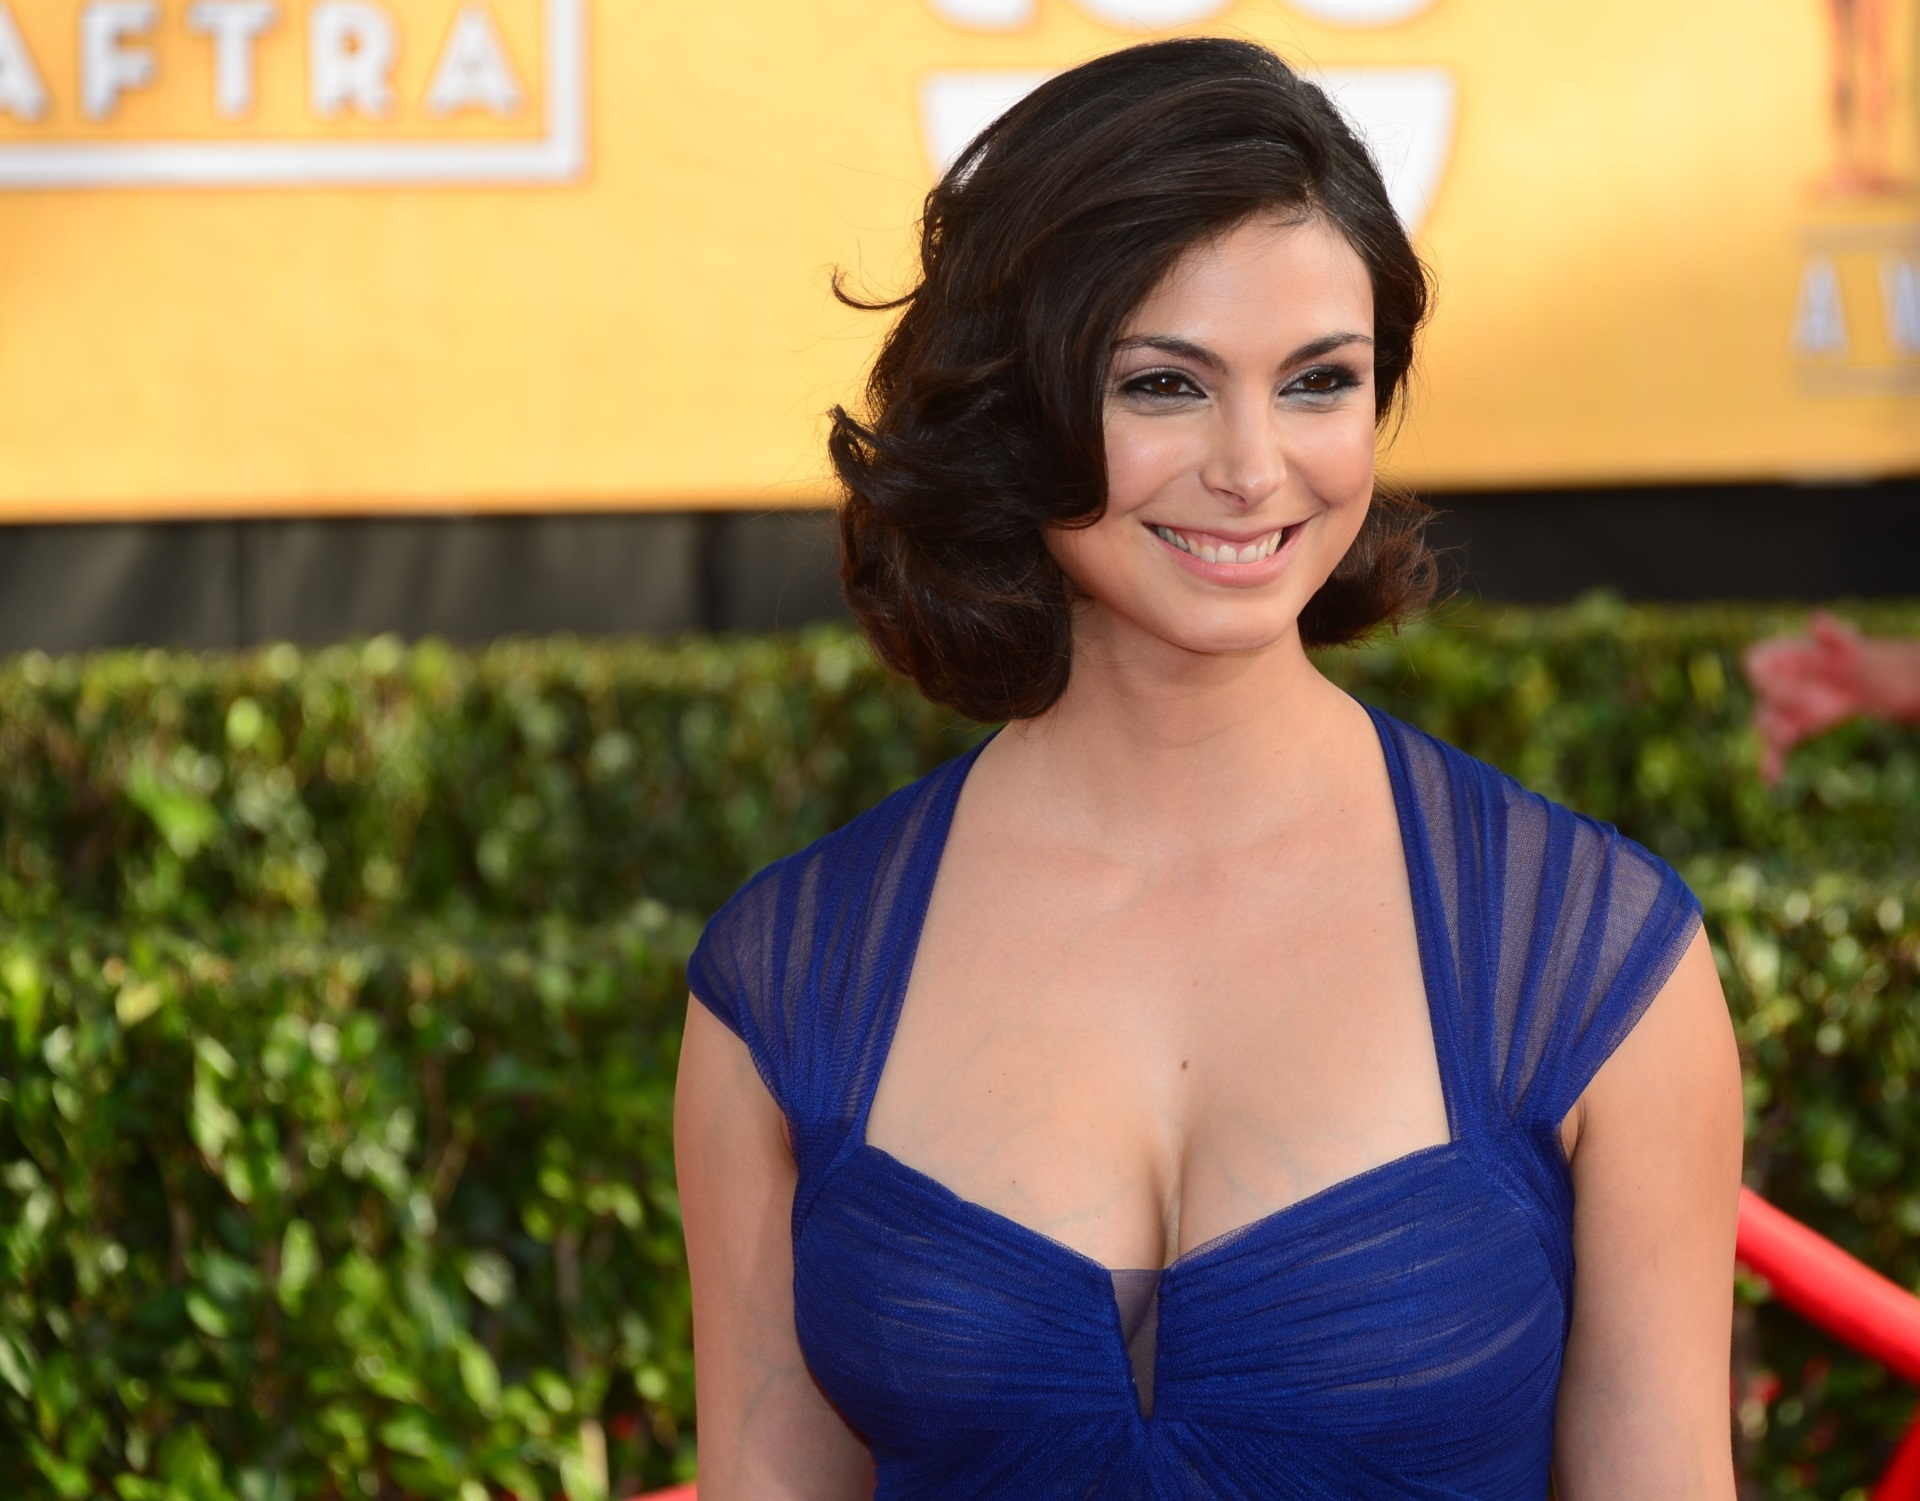 1920x1501 - Morena Baccarin Wallpapers 25